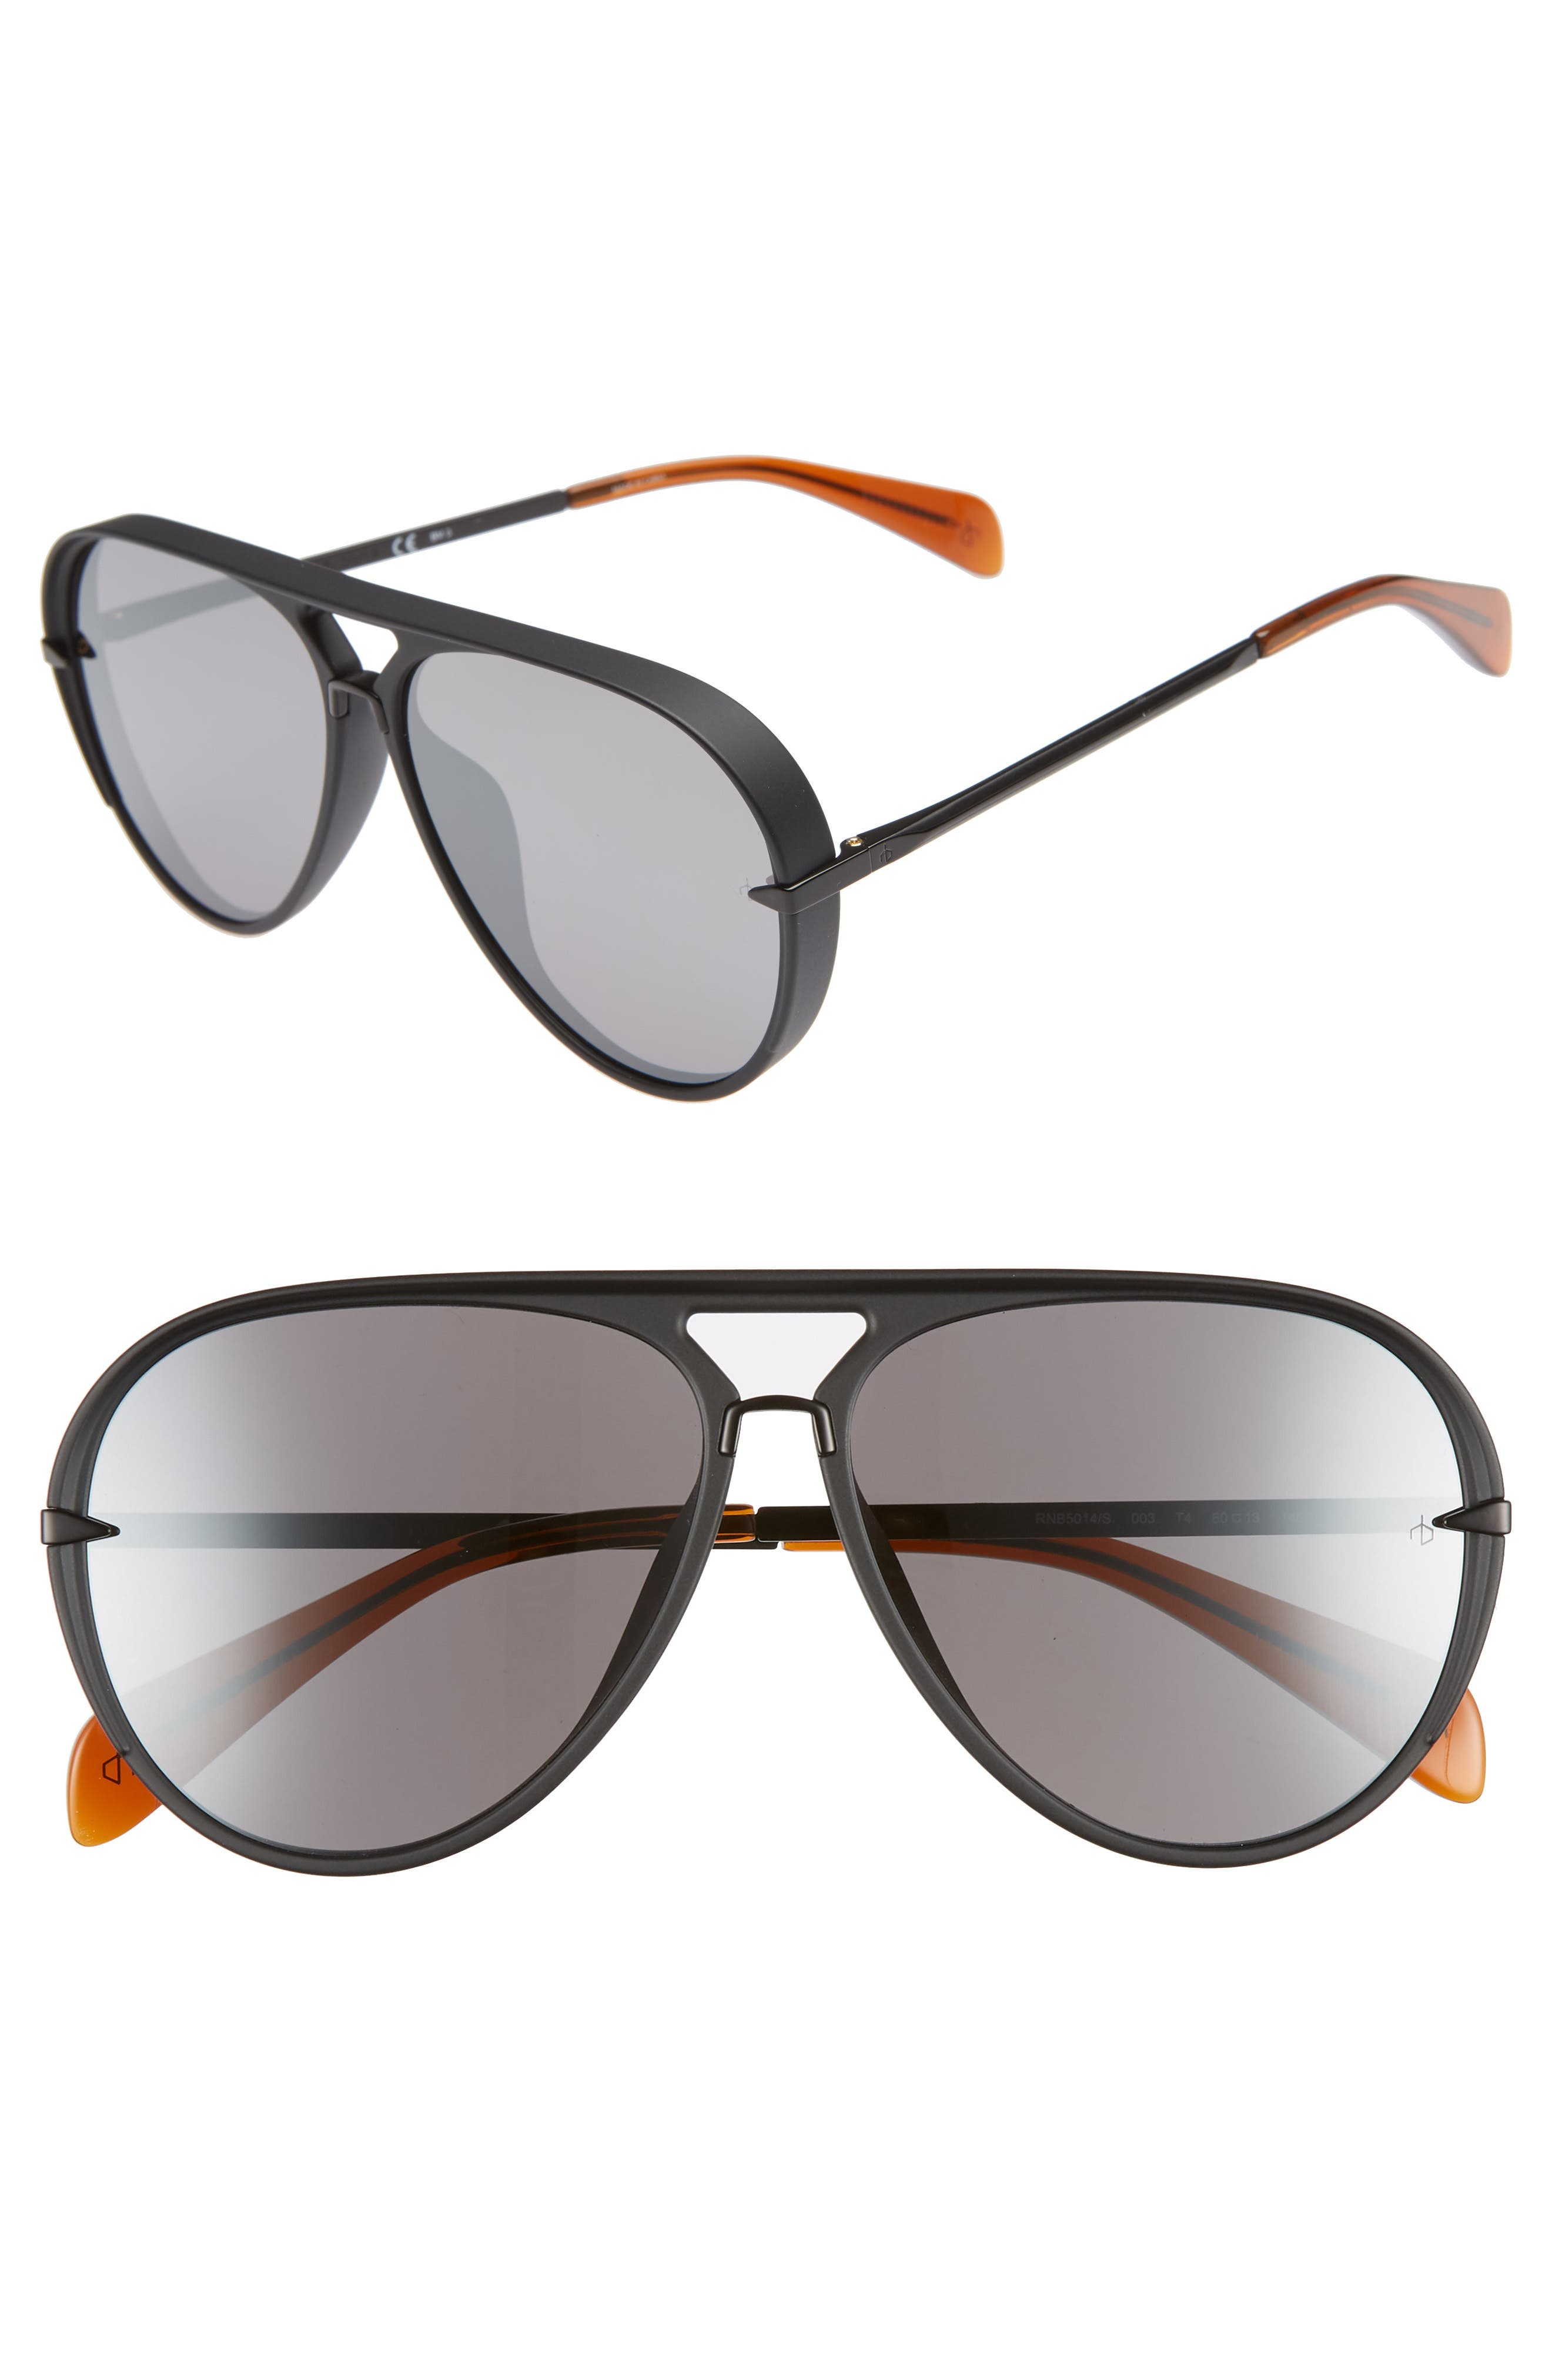 RAG & BONE 60mm Mirrored Aviator Sunglasses, Main, color, MATTE BLACK